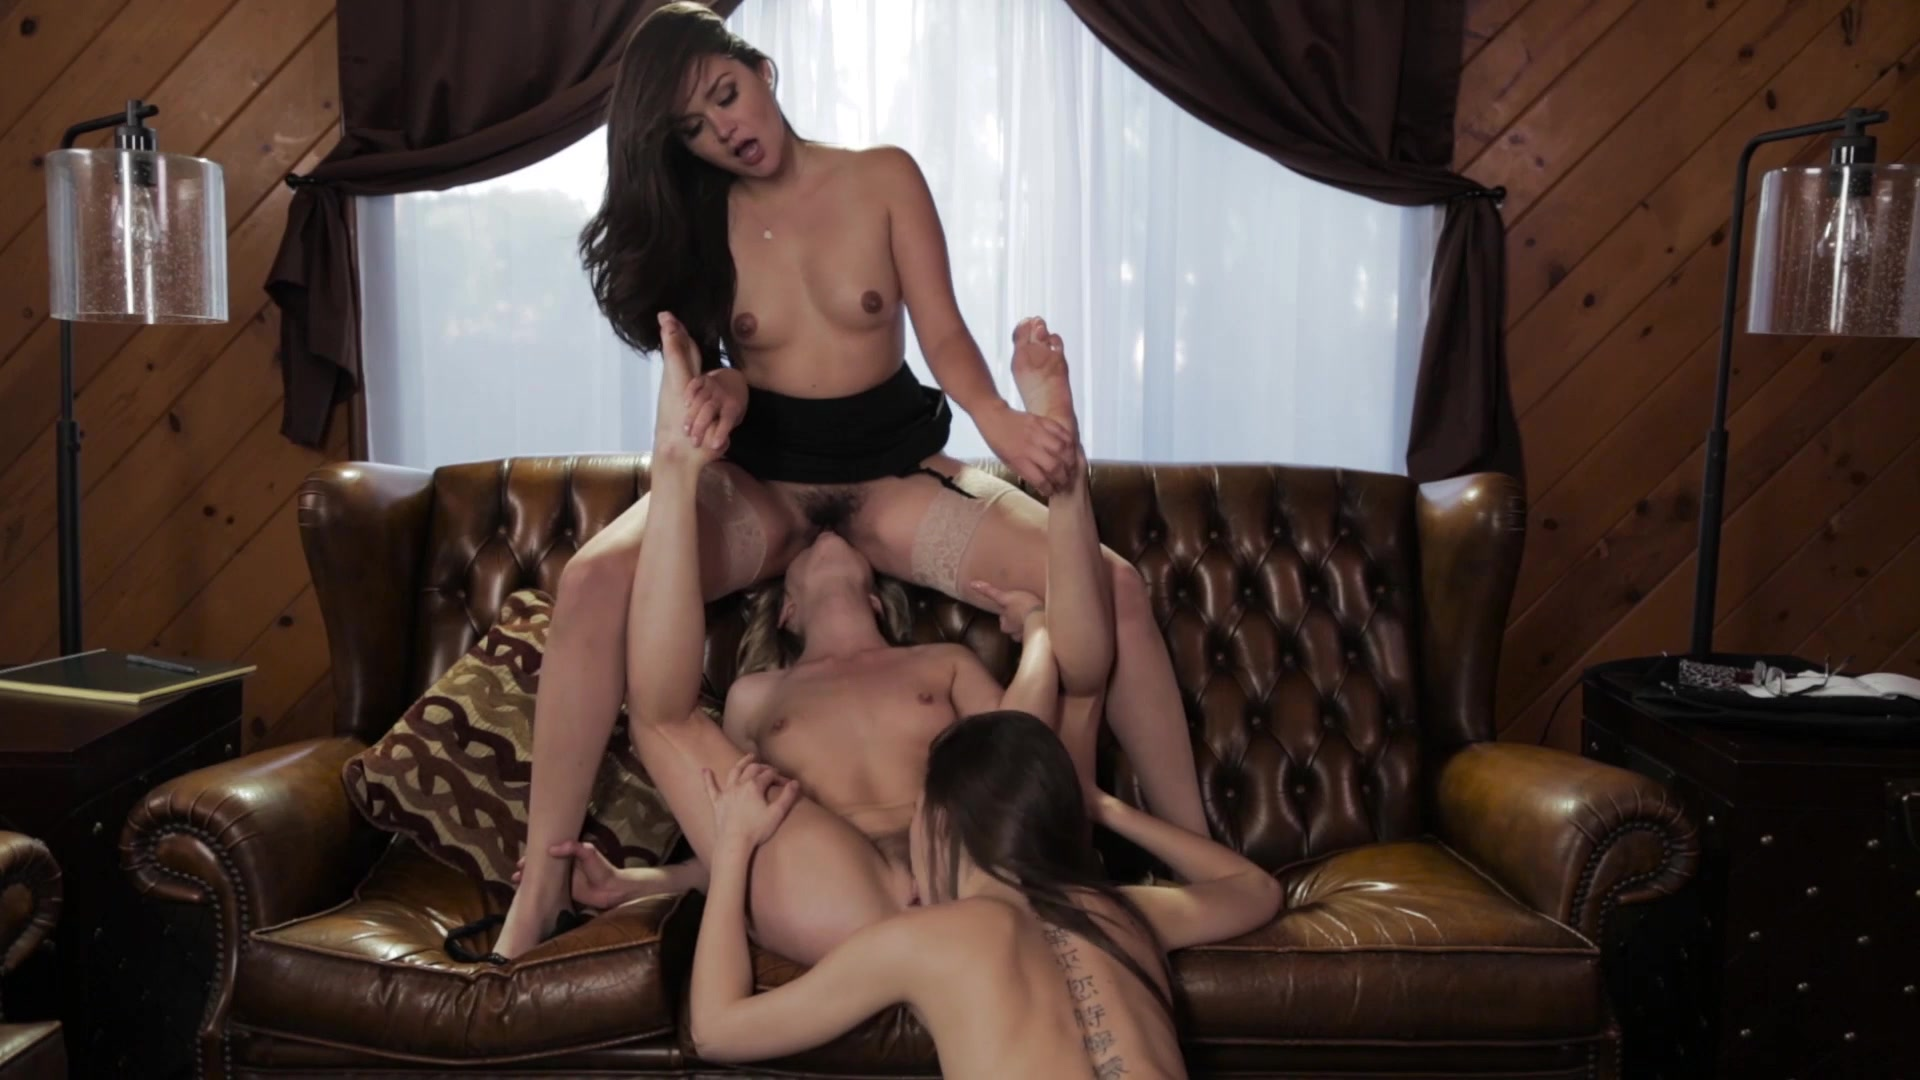 Scene with Allie Haze, Riley Reid and Karla Kush - image 11 out of 20